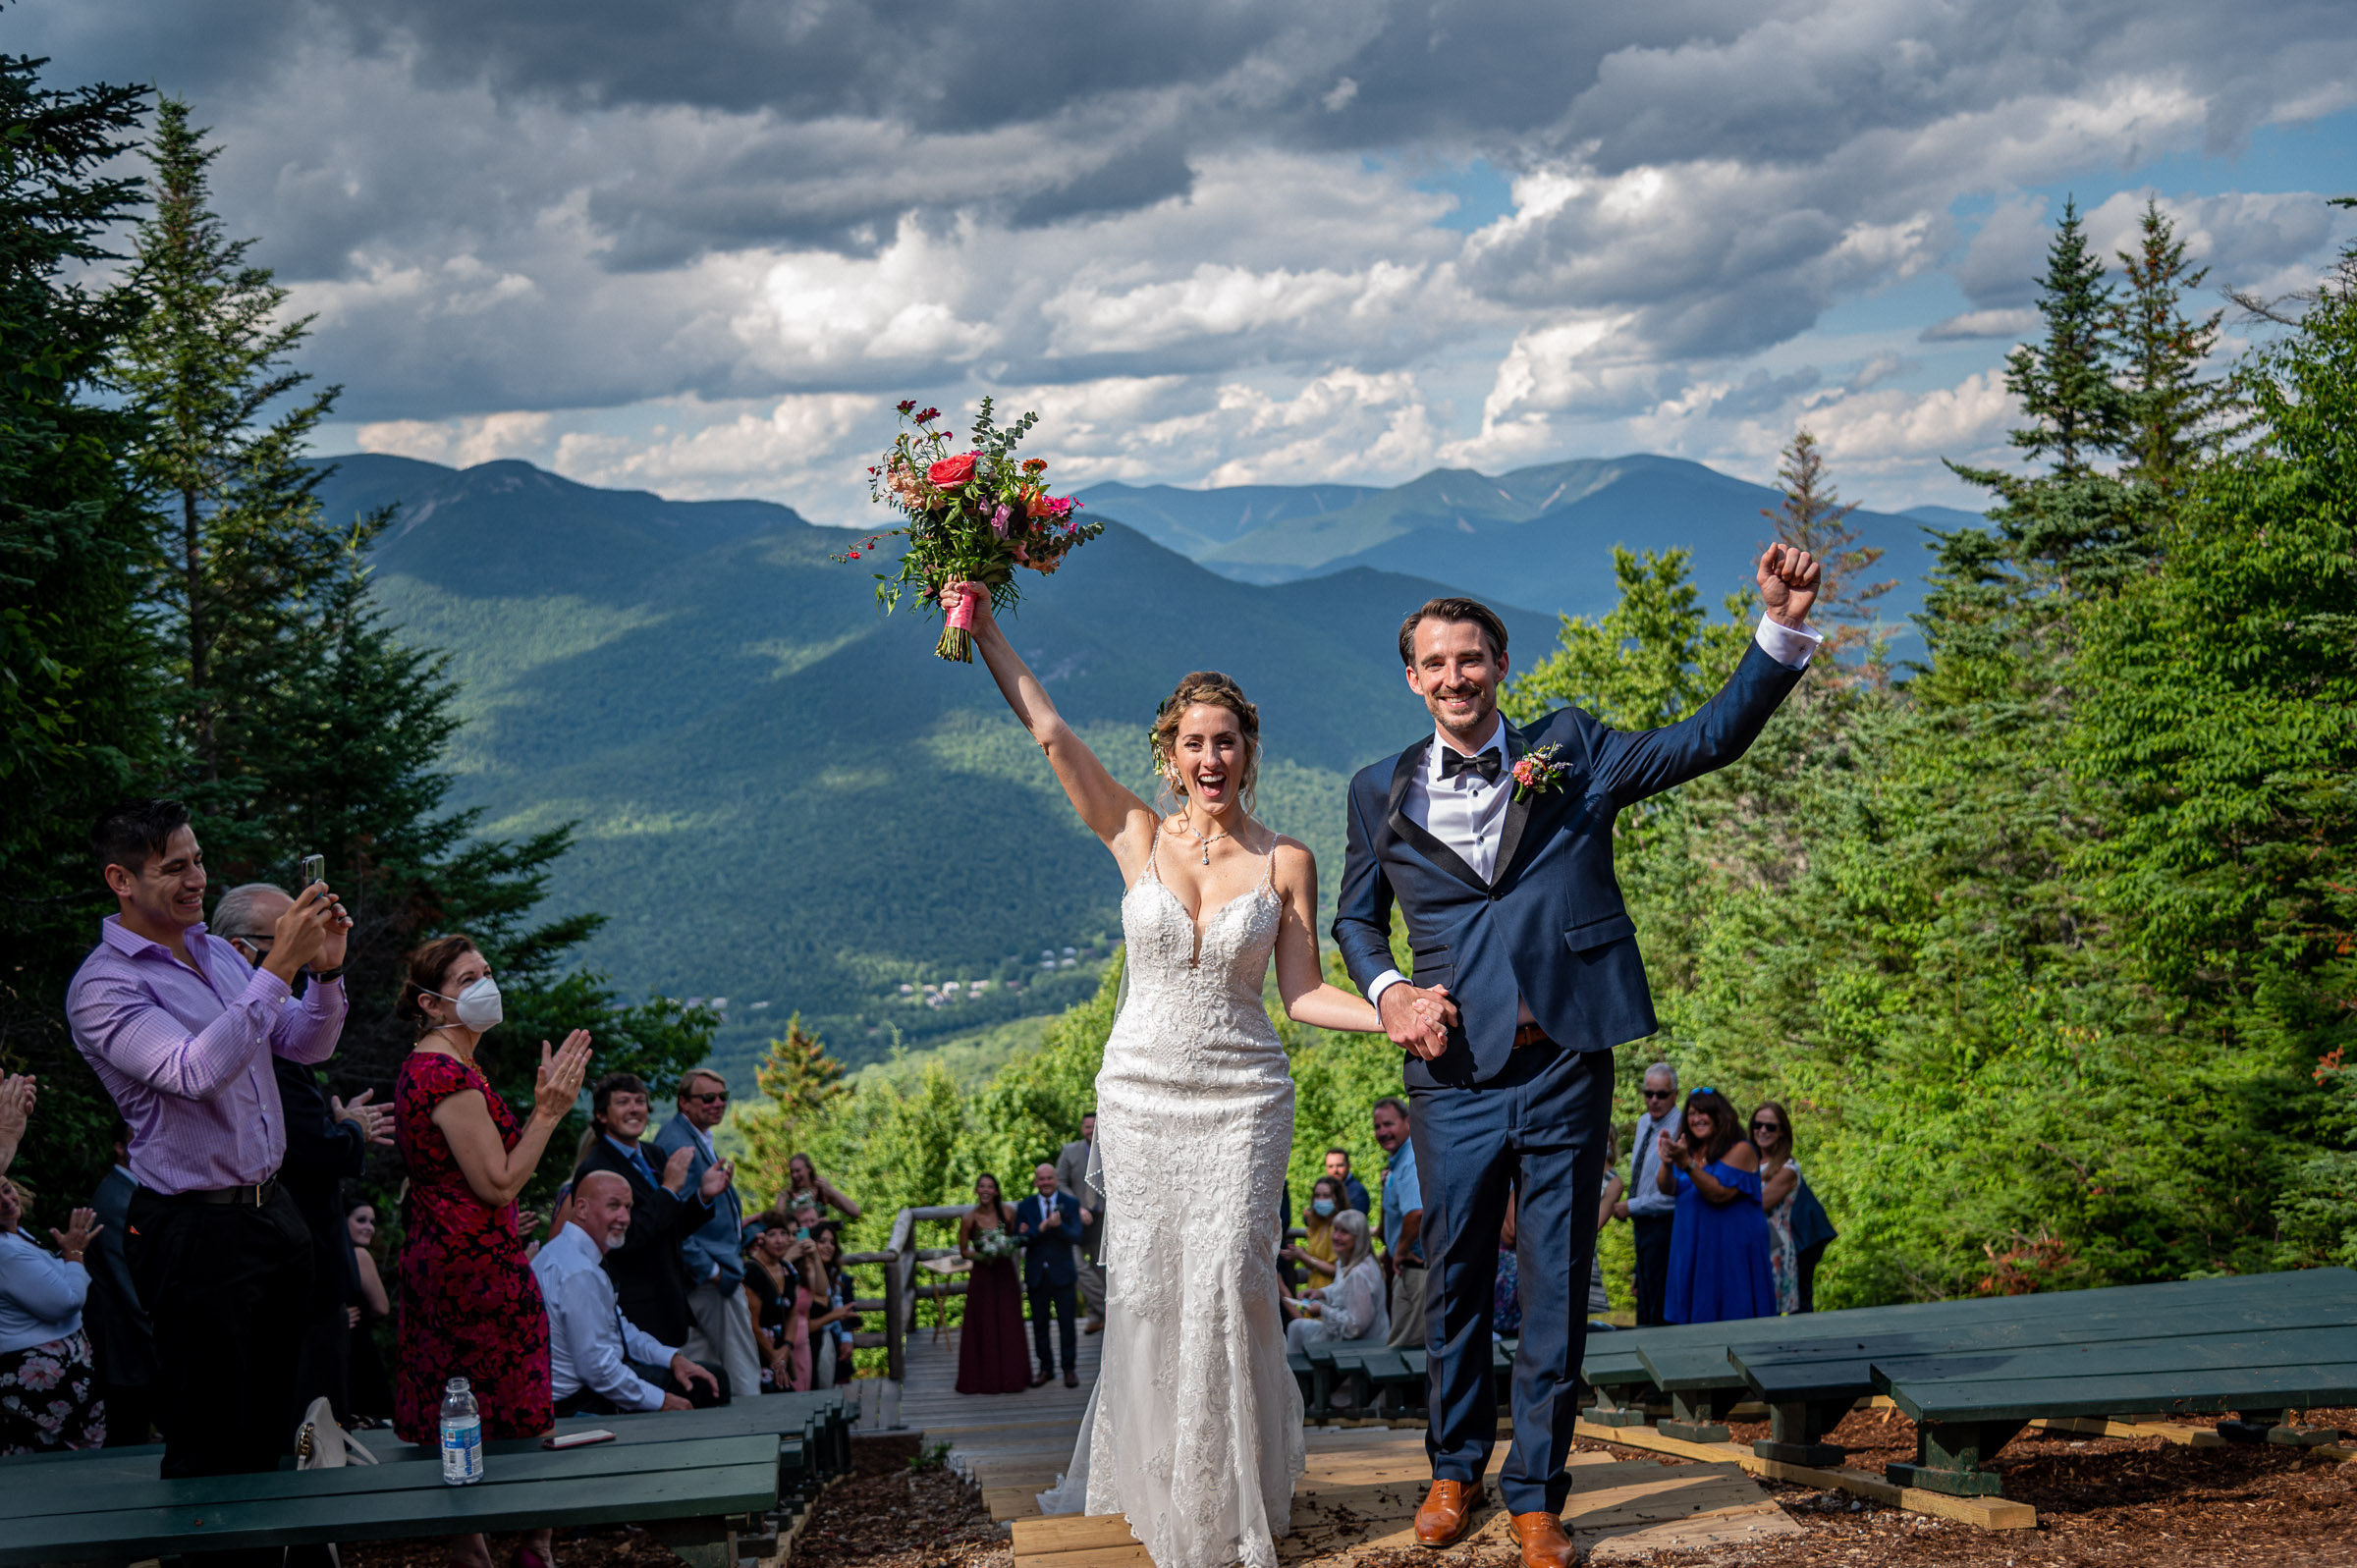 happy-couple-recessional-against-against-well-wishers-clouds-and-mountains-randall-garnick-photography